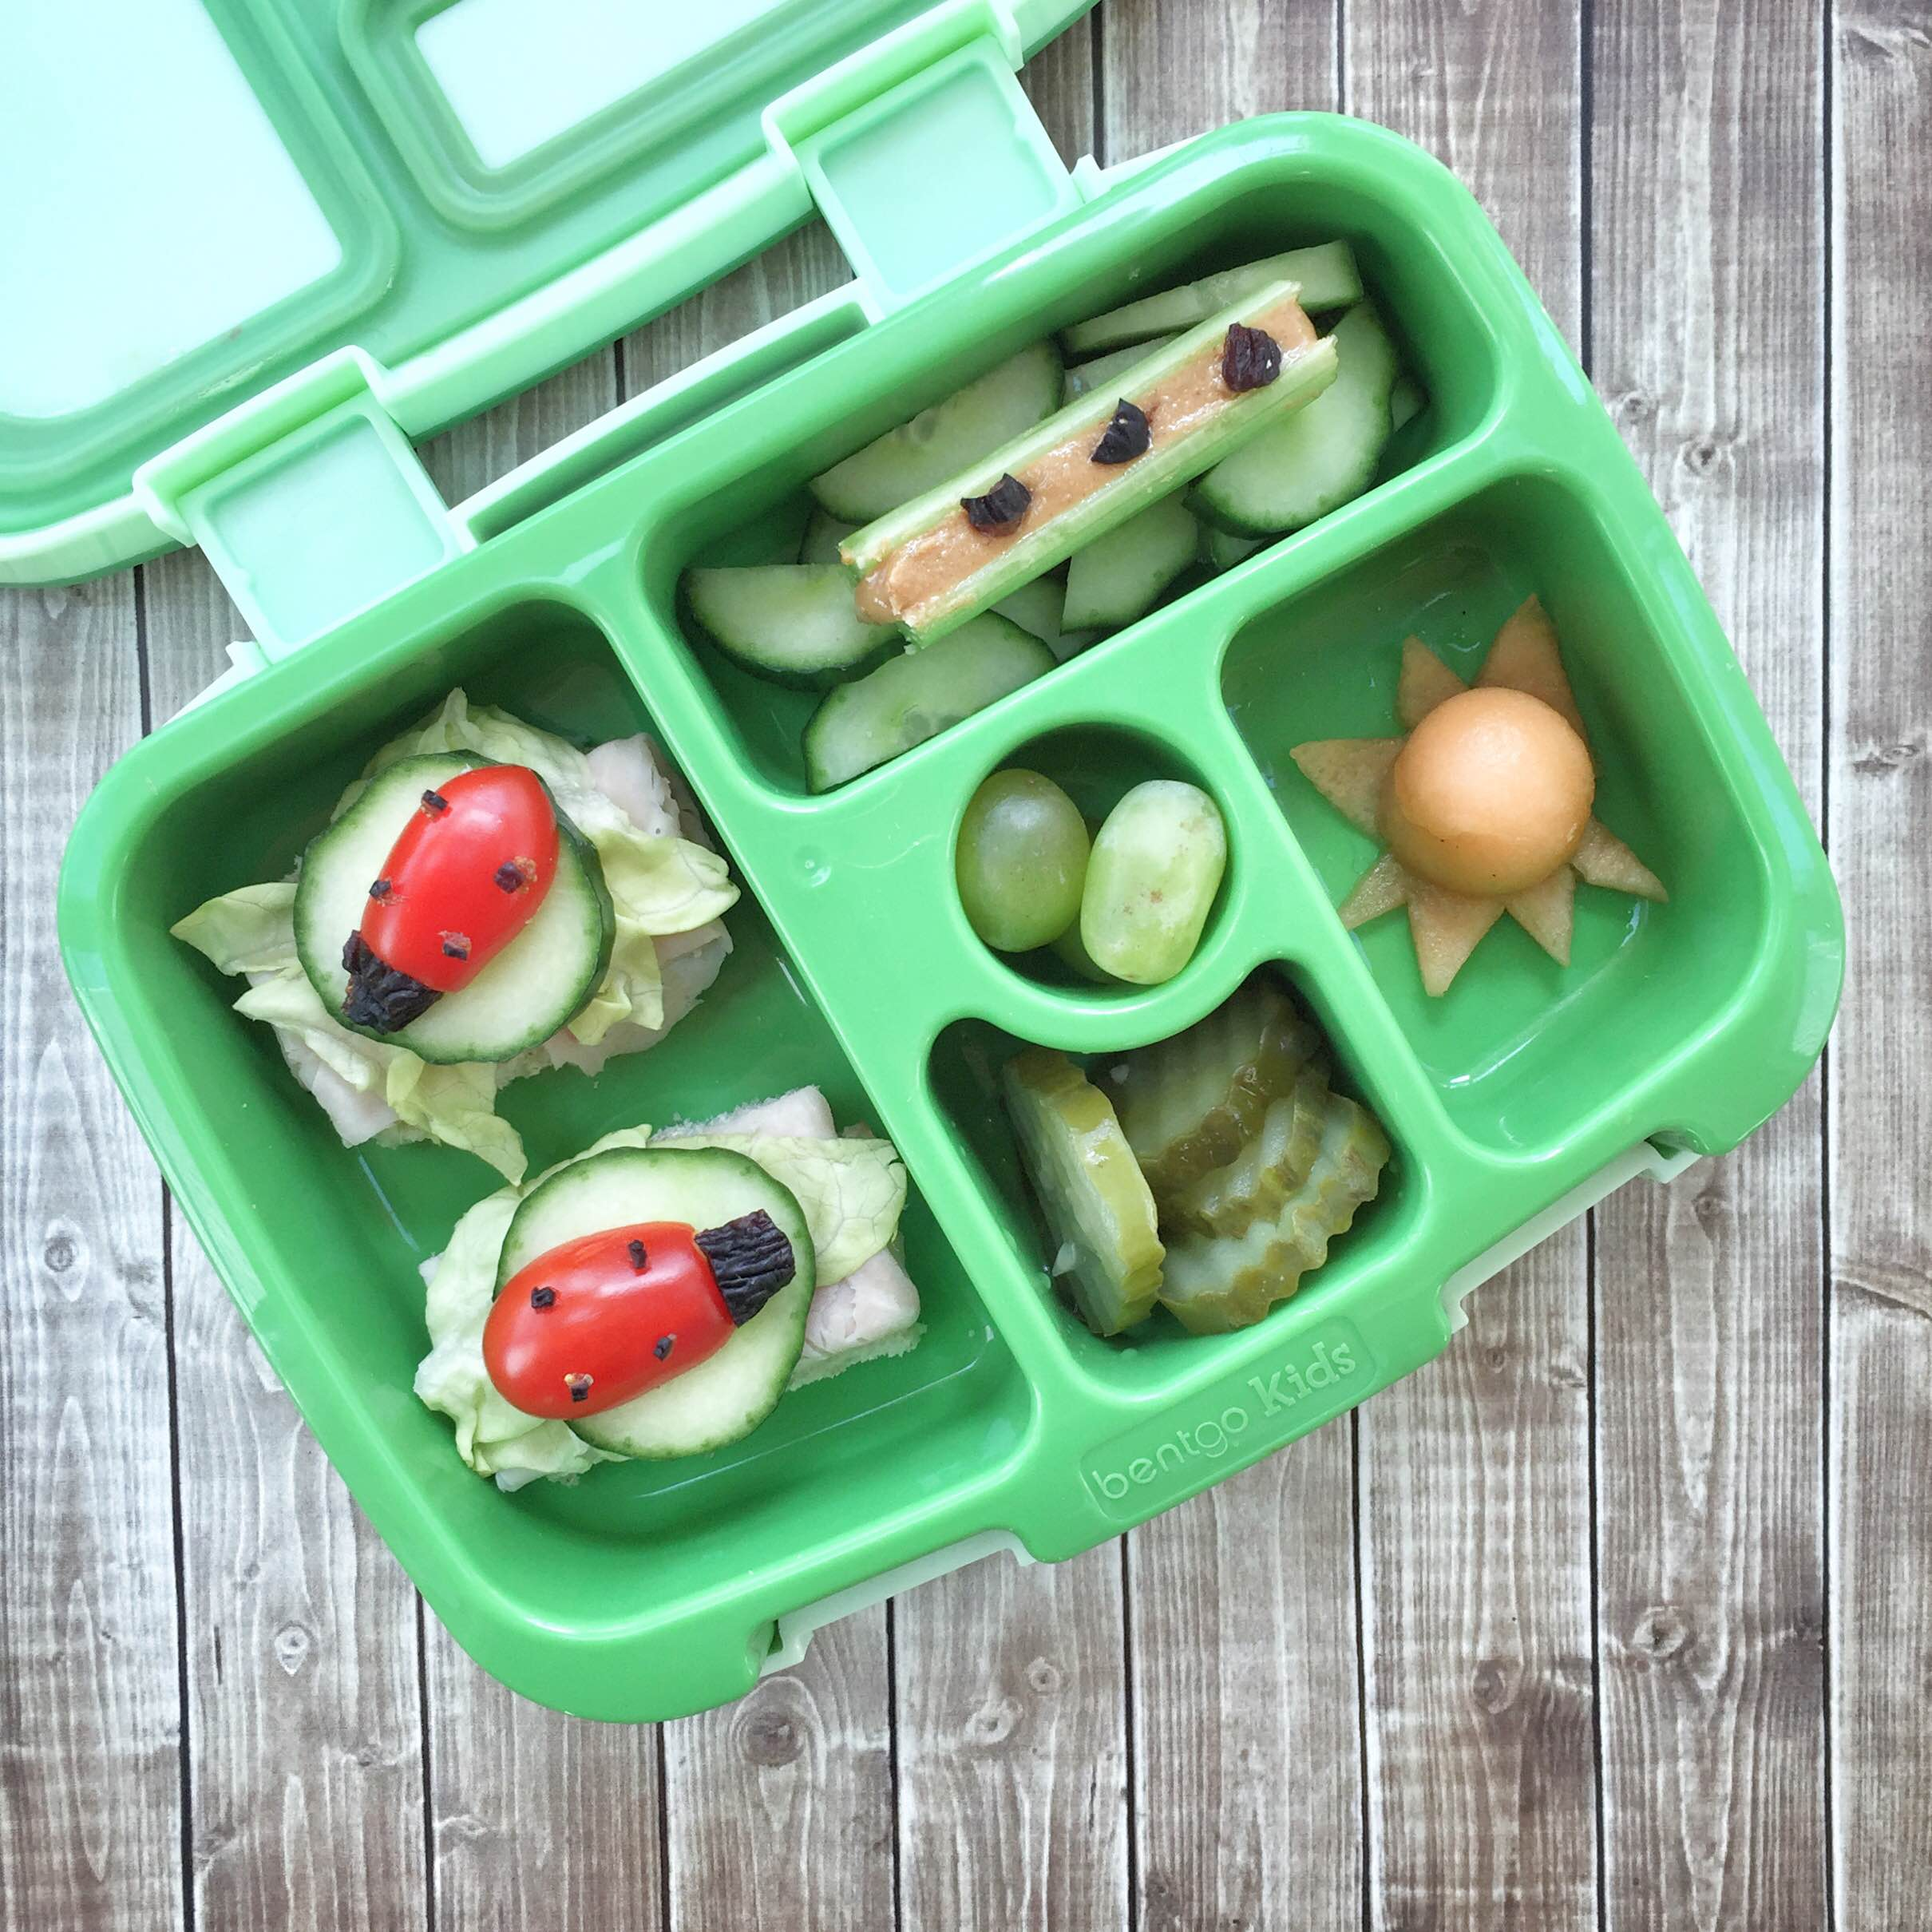 Earth day fun food ideas | Earth day lunchbox fun | Bento ideas for kids on Earth Day | Earth Day lunch | GinaKirk.com @ginaekirk